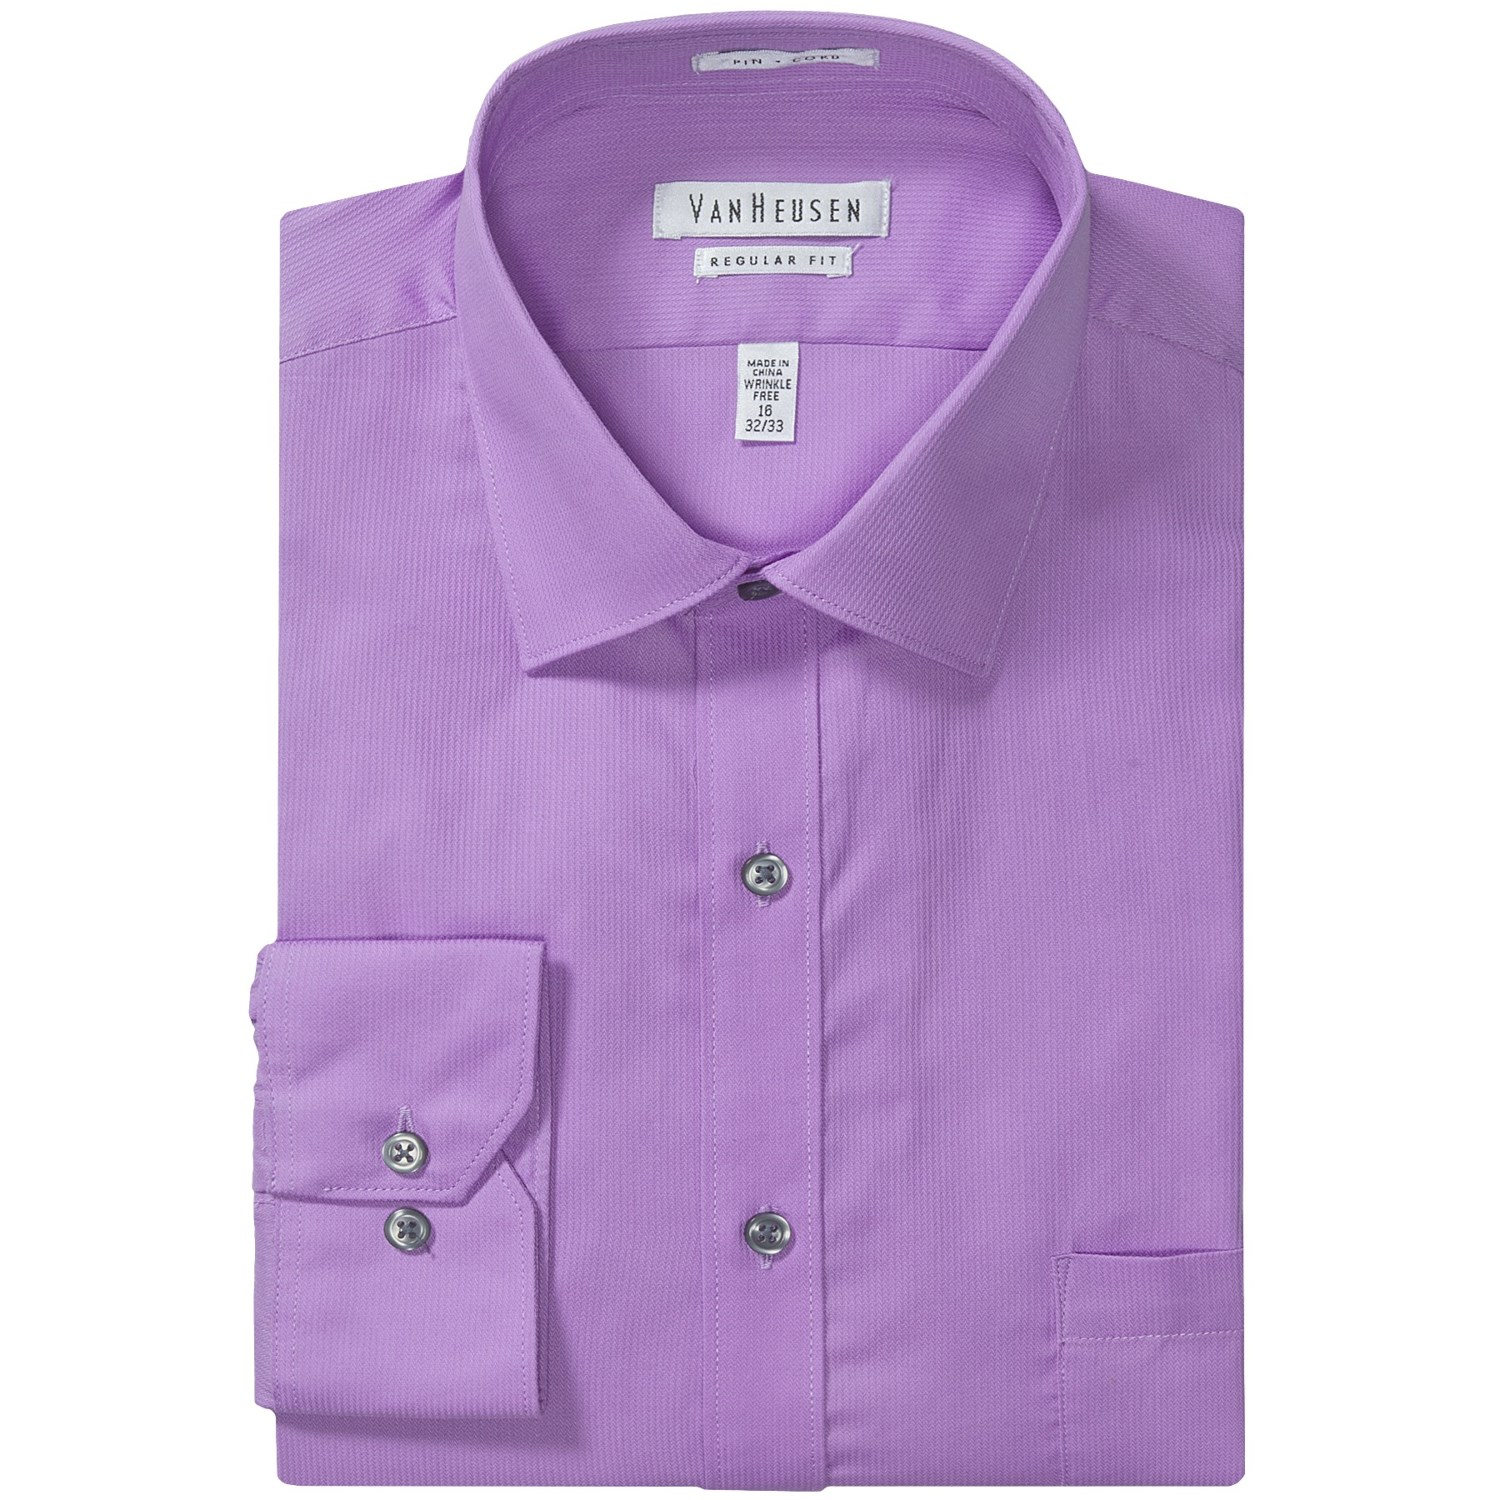 van heusen wrinkle free pincord dress shirt for men